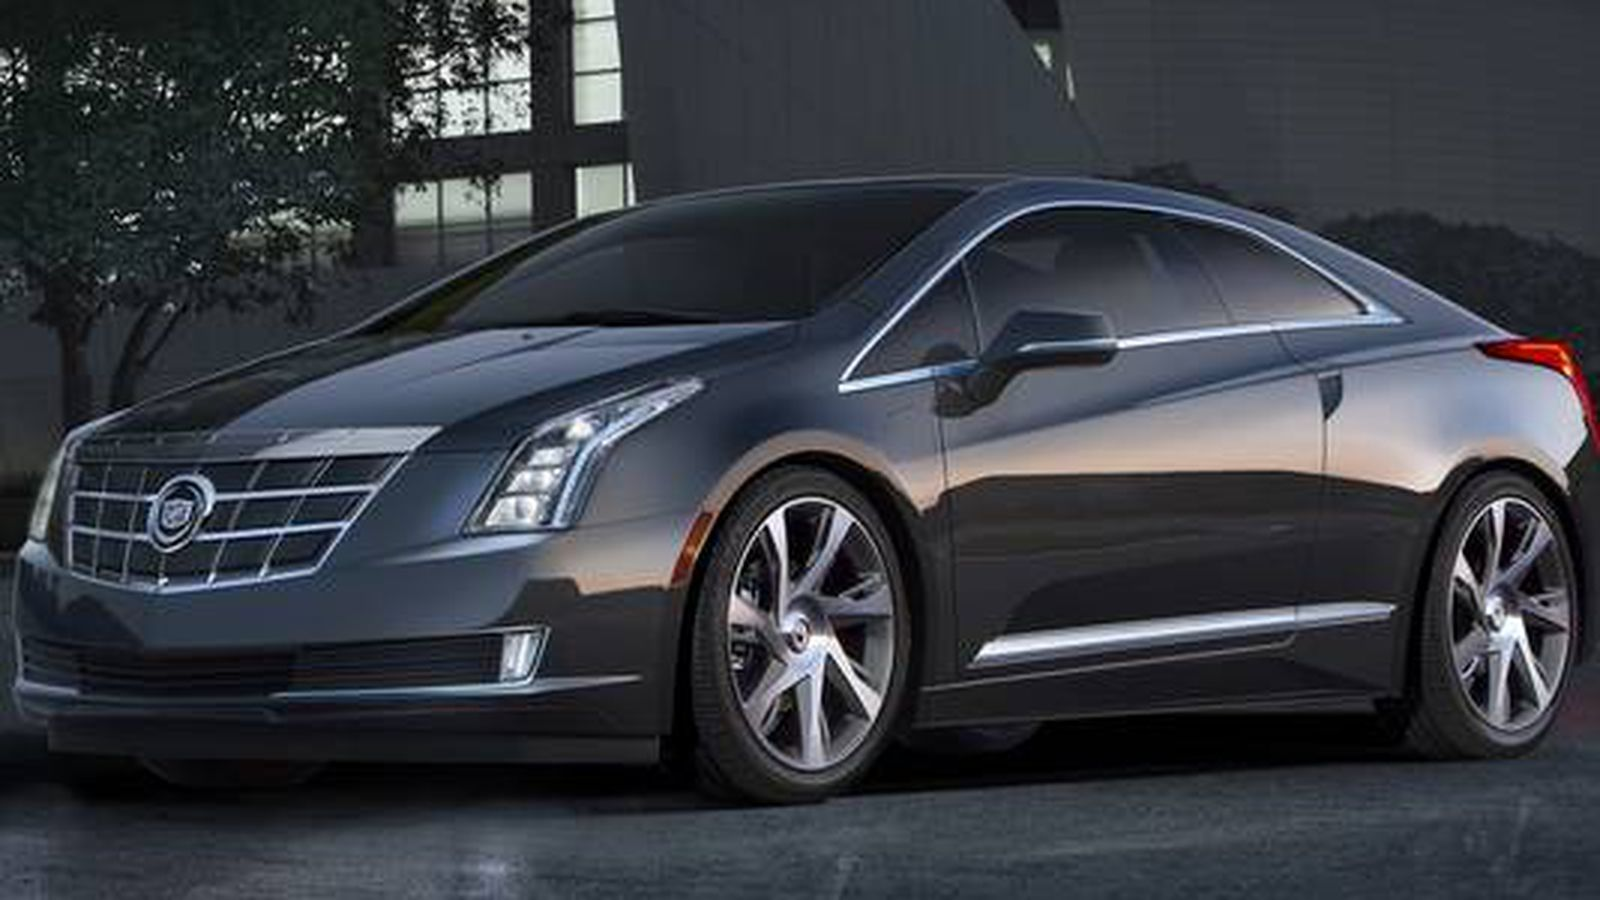 Cadillac is launching a car subscription service for $1,500 a month